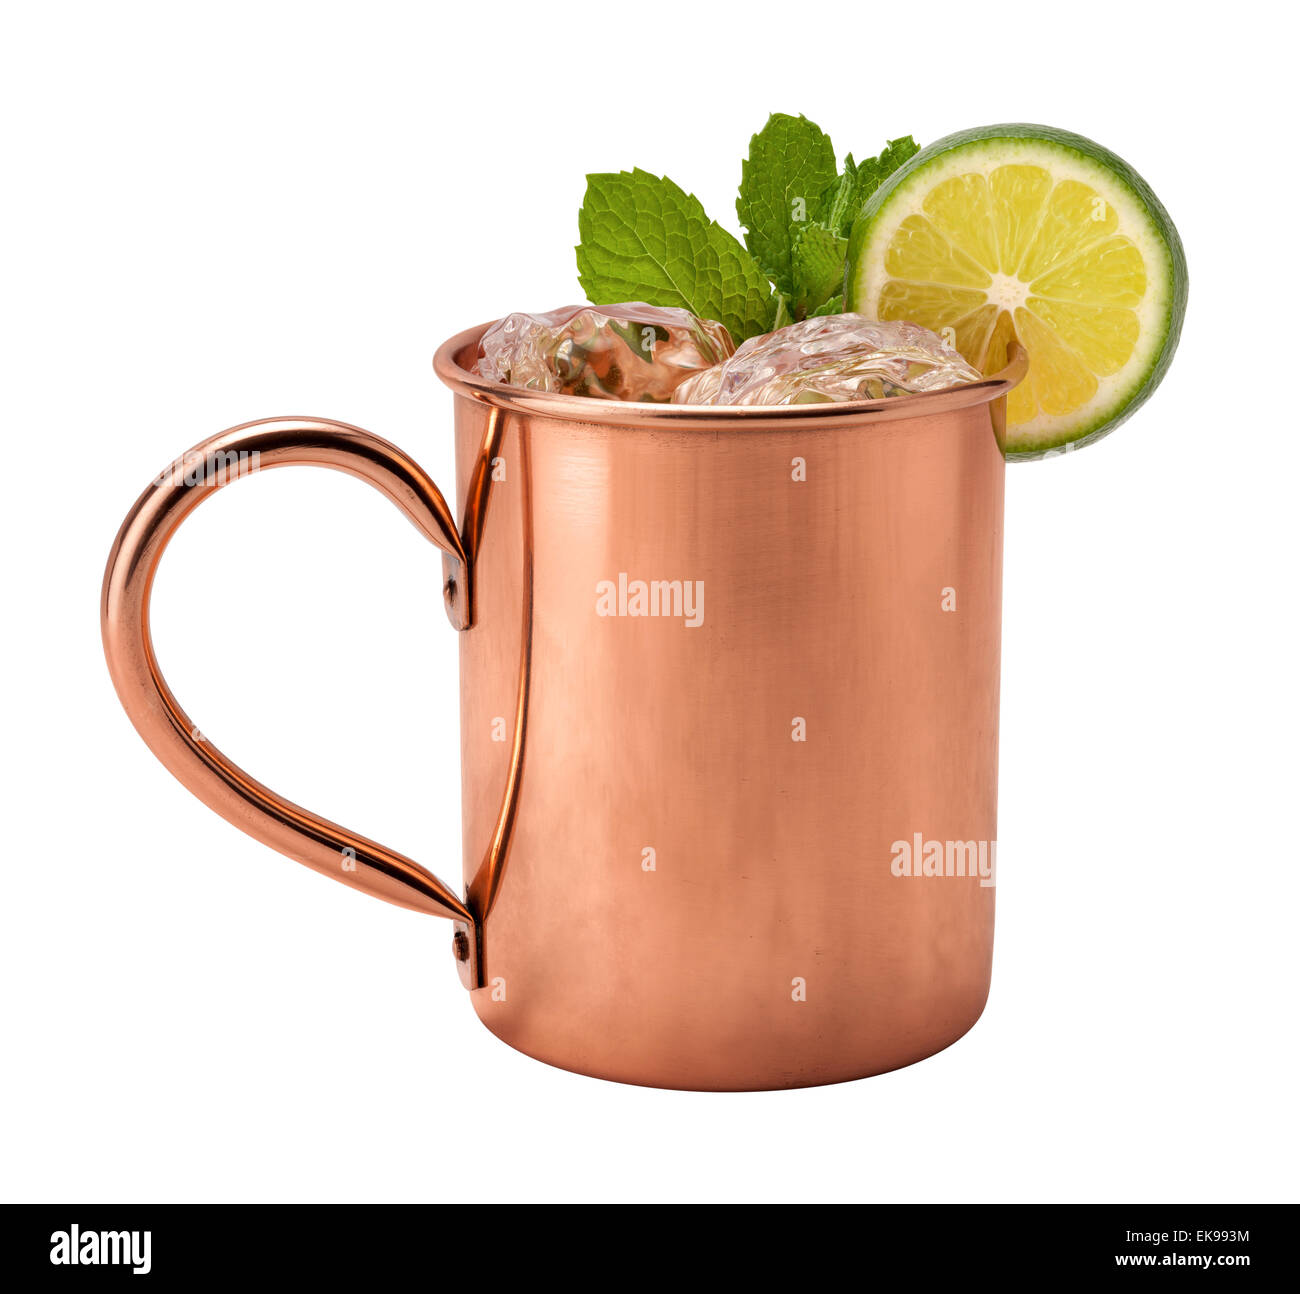 Moscow Mule in a Copper Mug - Stock Image